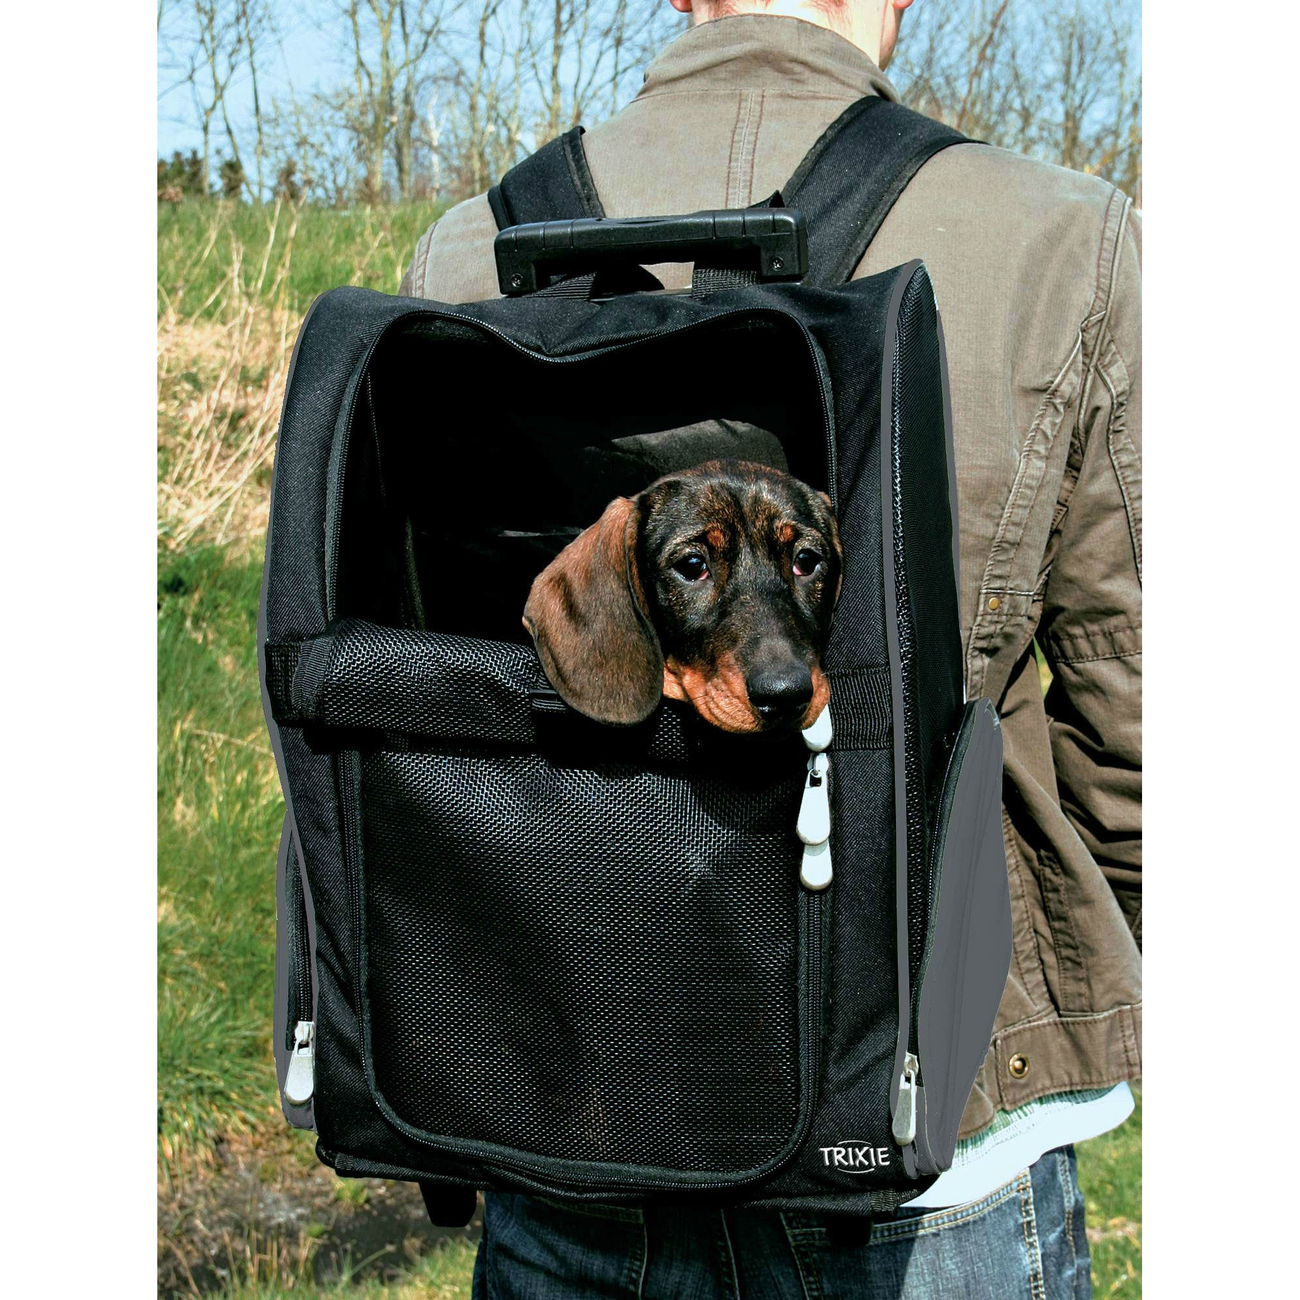 Trixie Hundetrolley Rucksack 2in1 2880, Bild 2